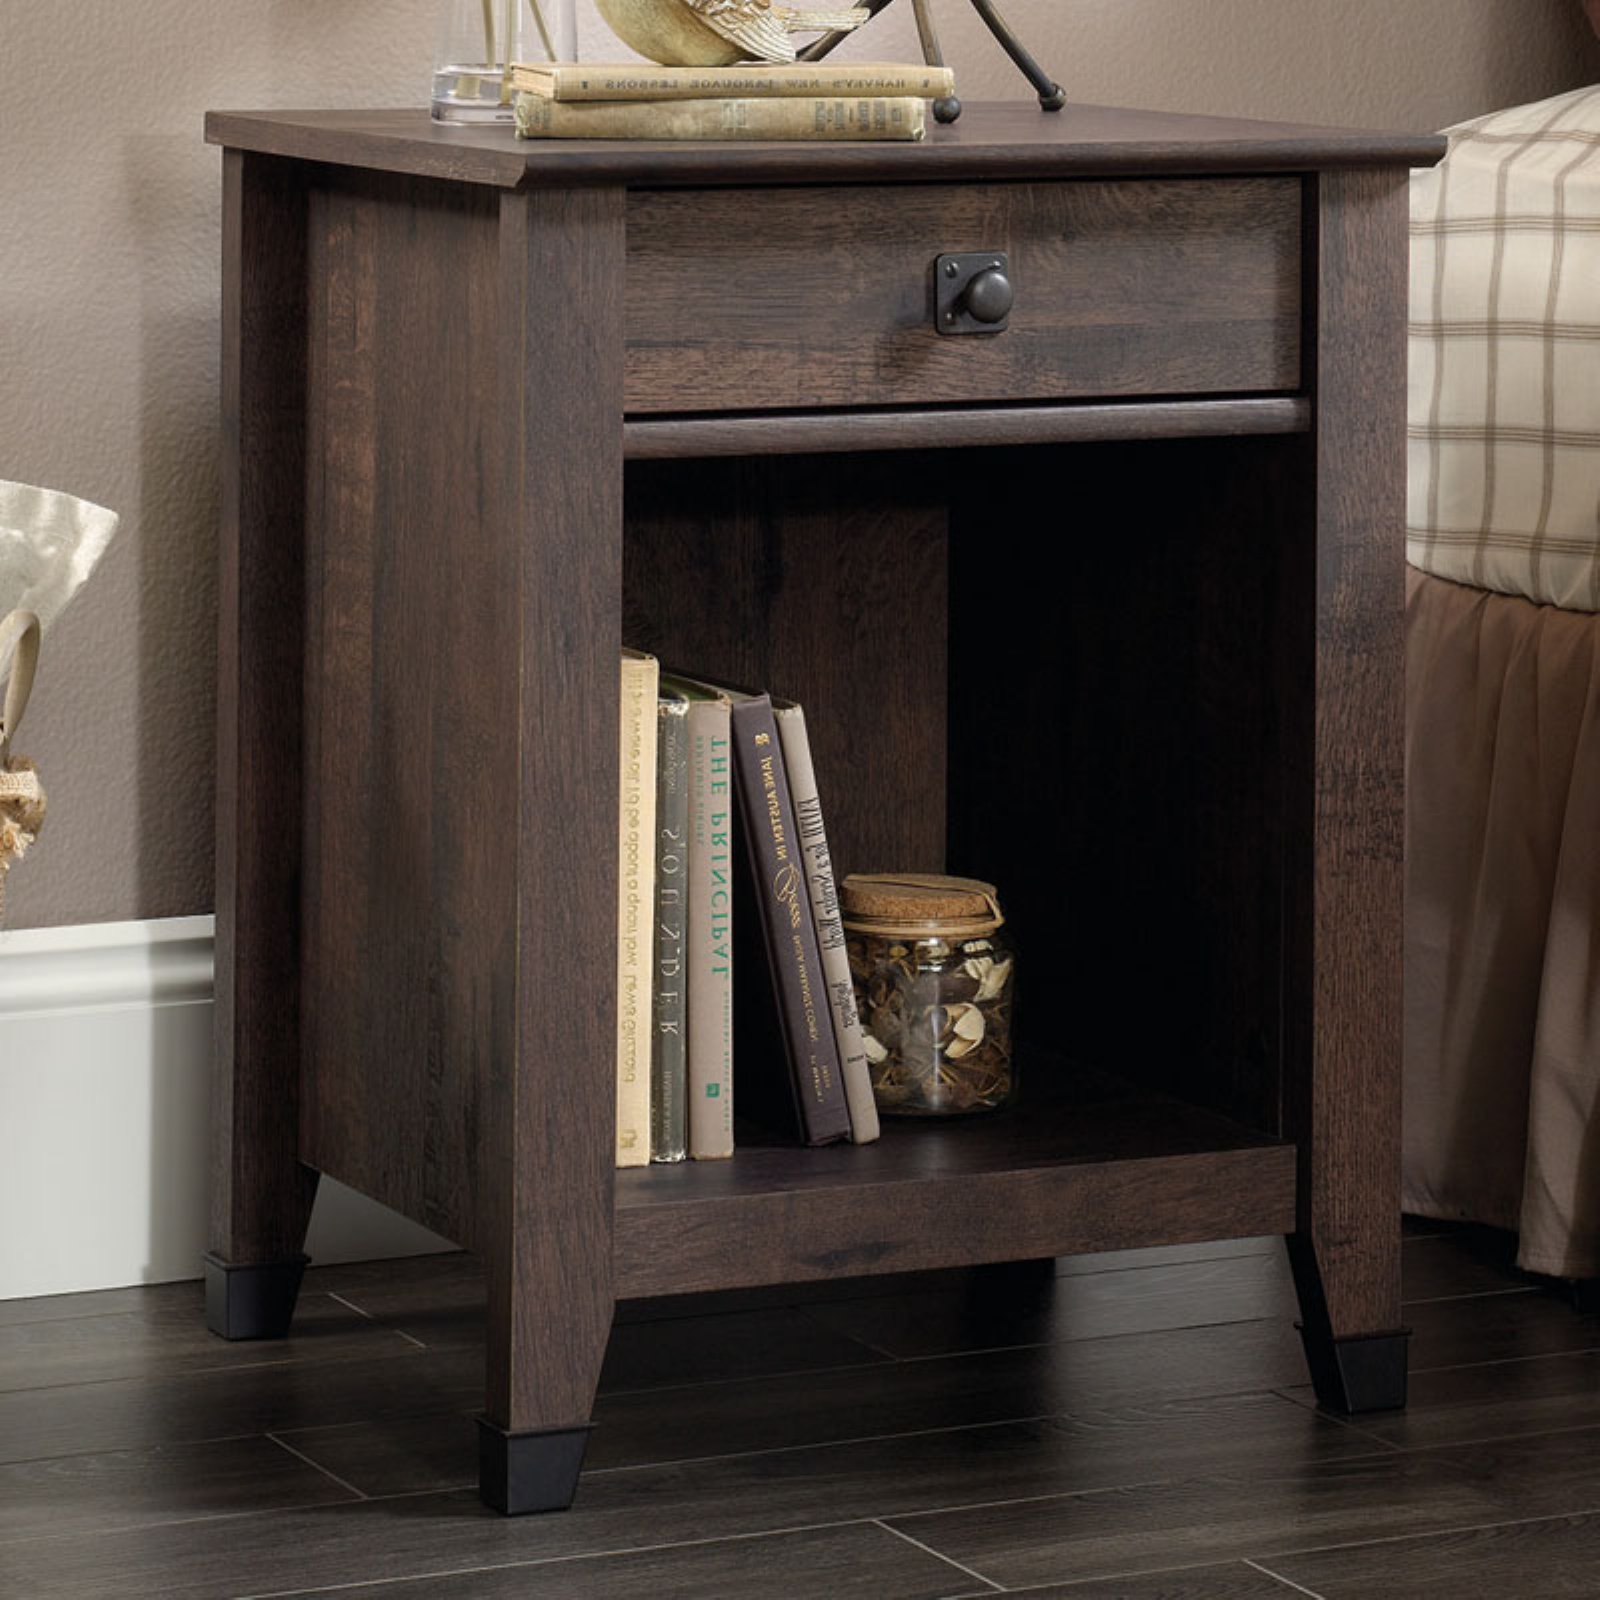 Sauder Carson Forge Night Stand, Coffee Oak Finish